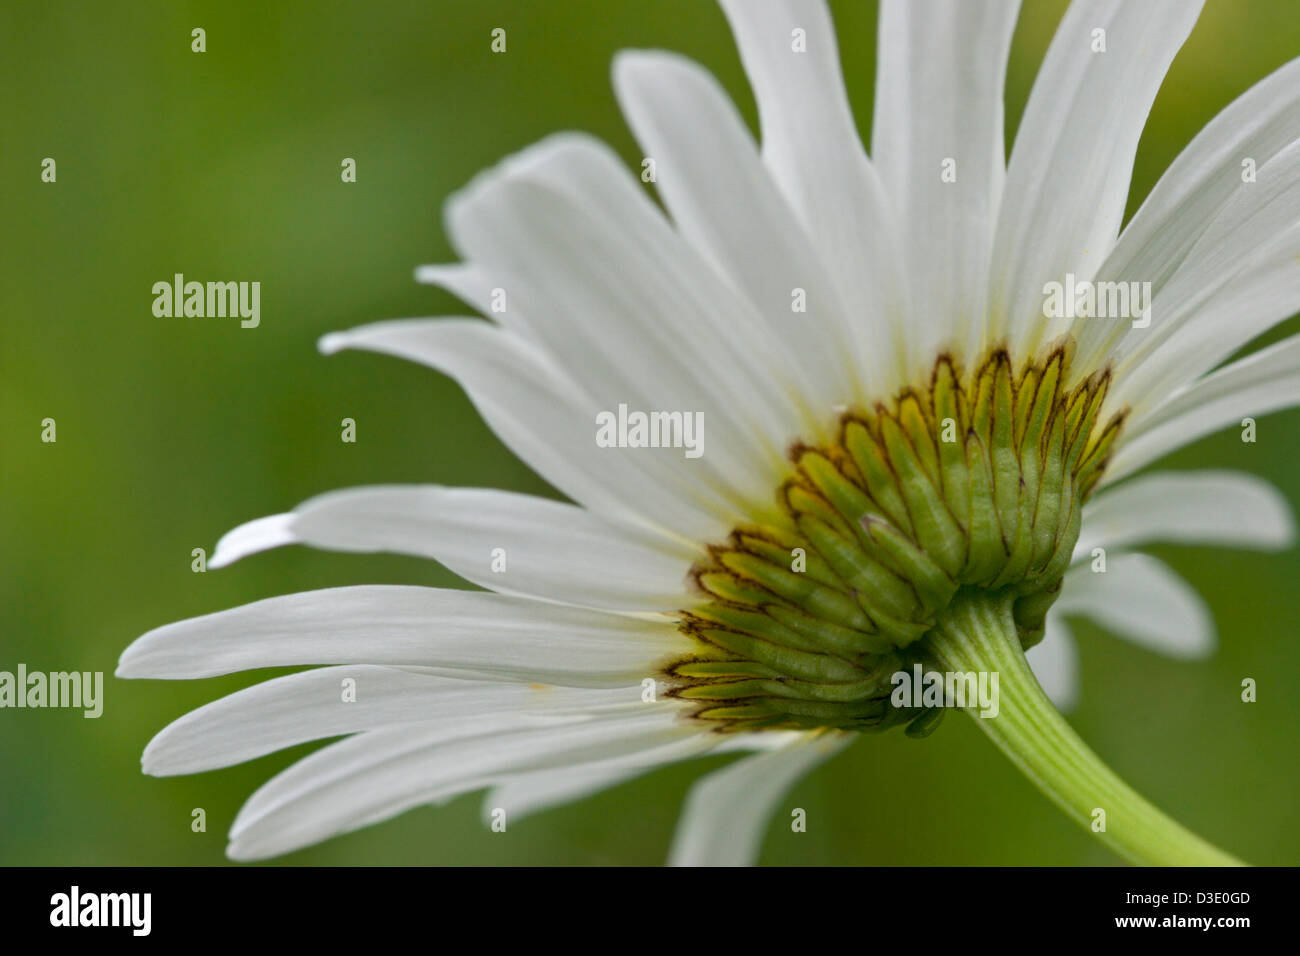 Wild Daisy Flower Petals White Stock Photo 53782861 Alamy